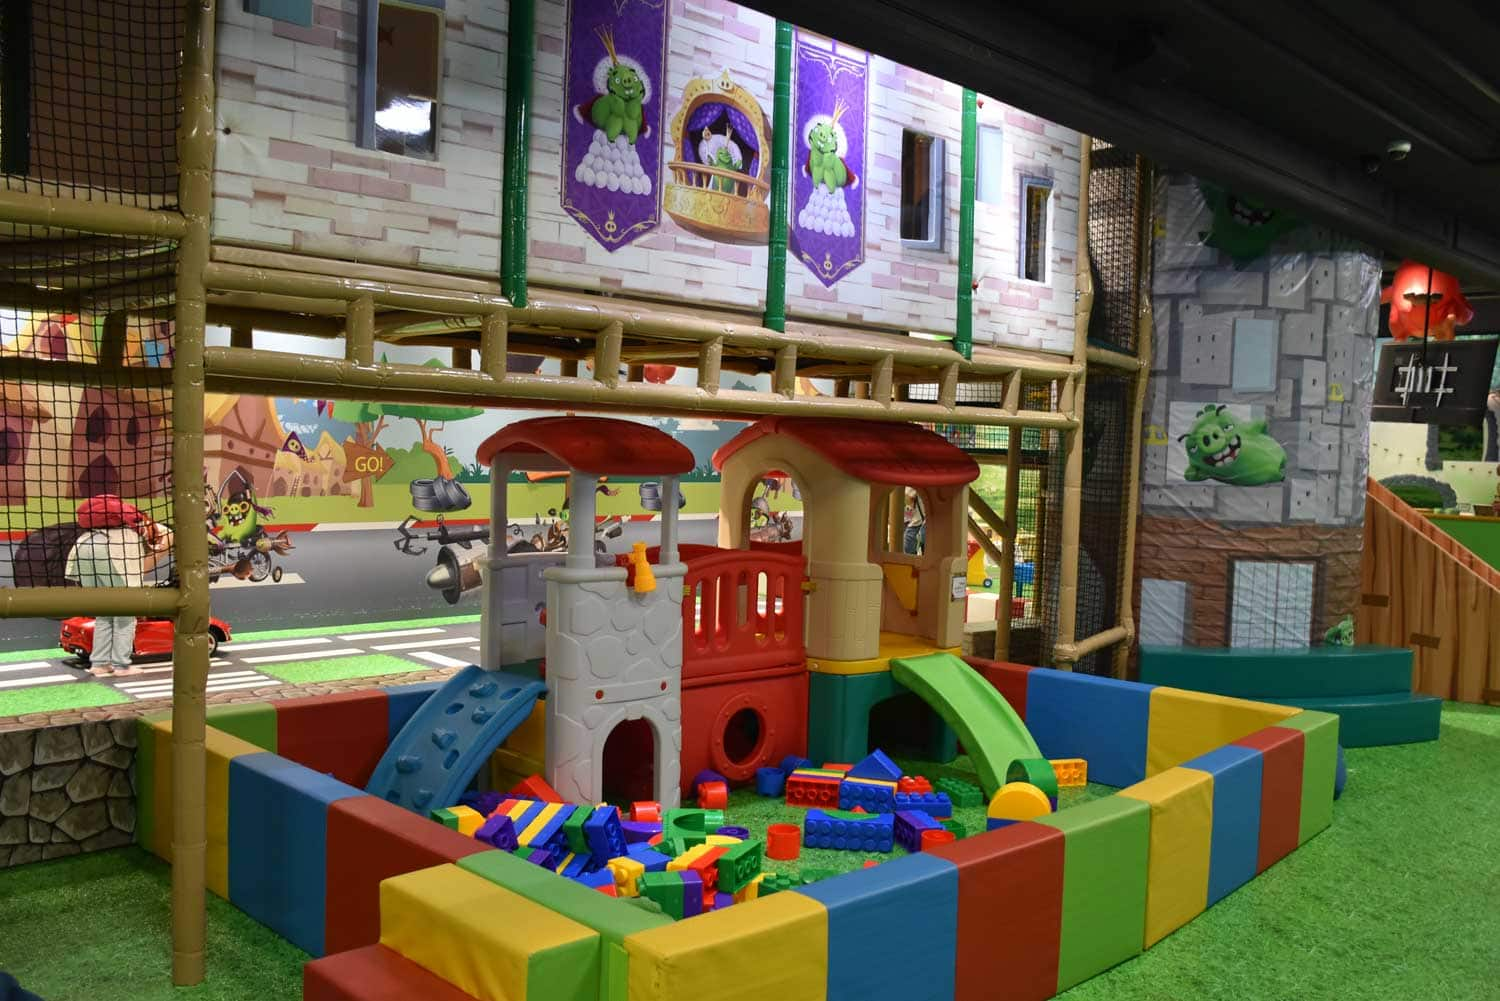 Sofitel Macau Angry Birds Play Center lego blocks